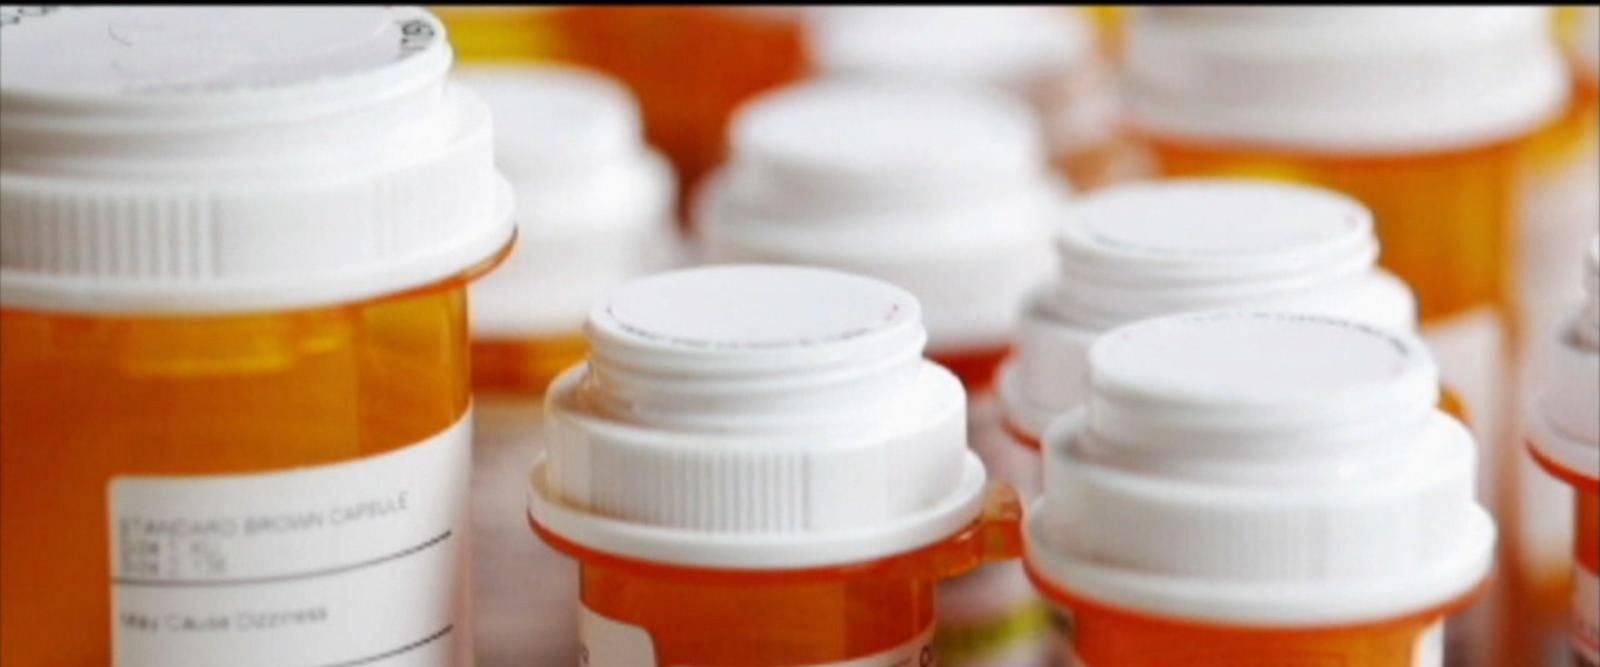 VIDEO: Dramatic rise in ADHD medication mishaps among kids, report finds